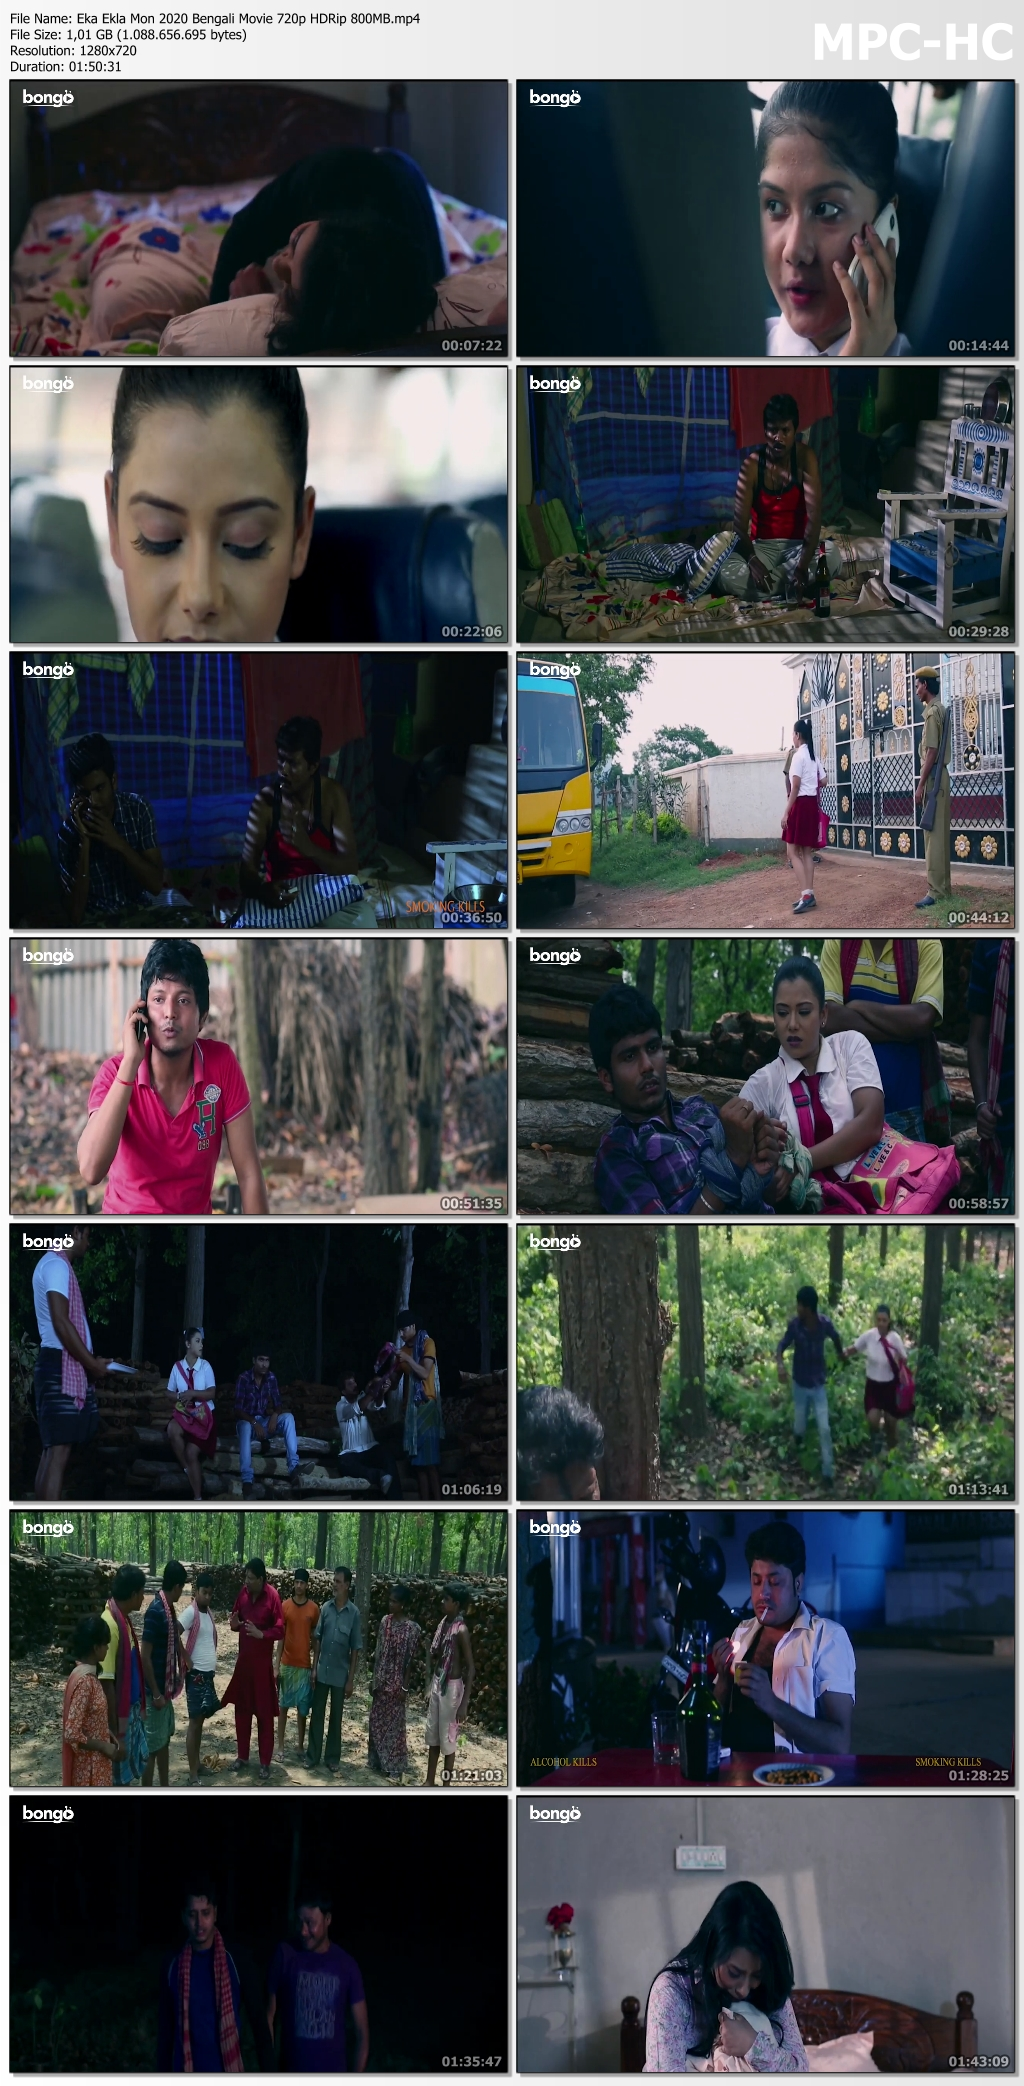 Eka-Ekla-Mon-2020-Bengali-Movie-720p-HDRip-800-MB-mp4-thumbs